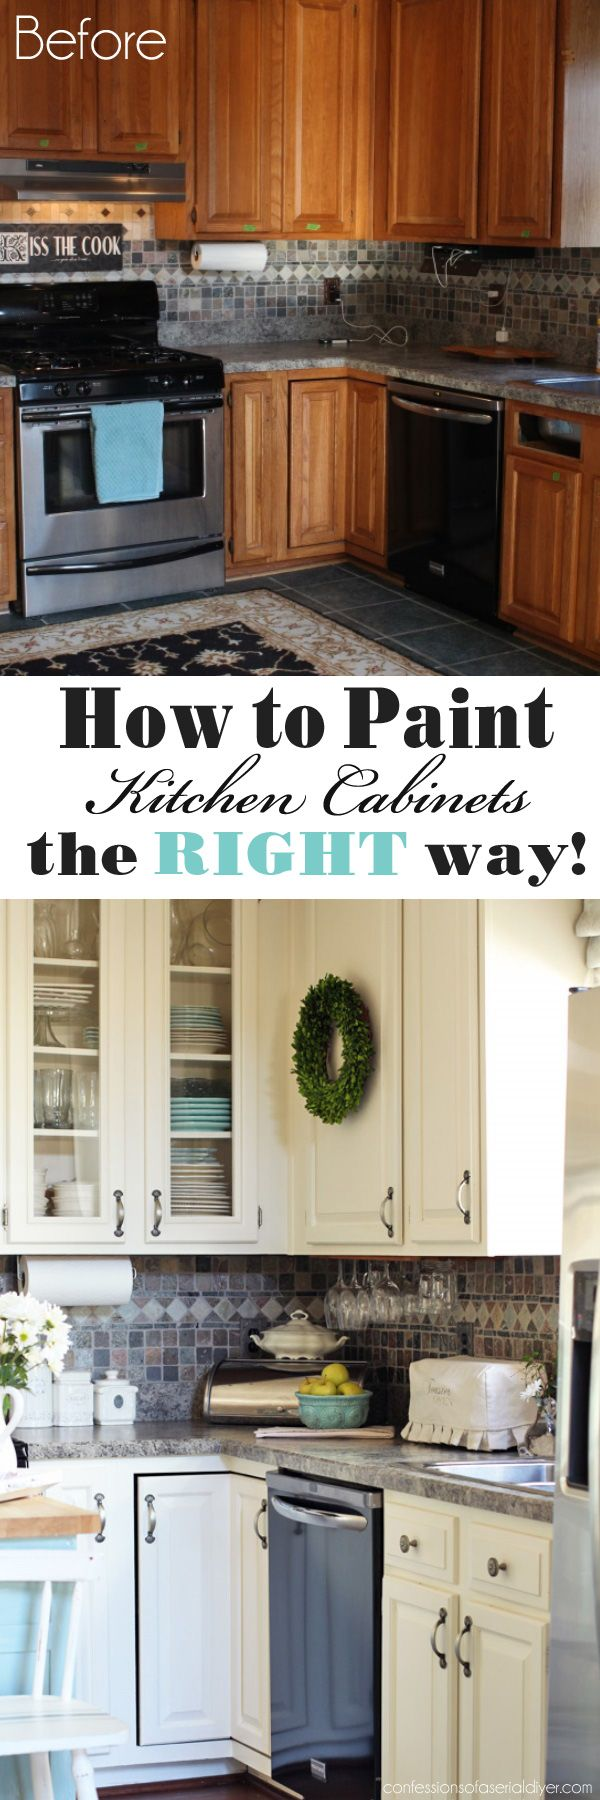 Top 25 Best Painted Kitchen Cabinets Ideas On Pinterest Painting Cabinets Diy Kitchen Paint And Diy Kitchen Remodel